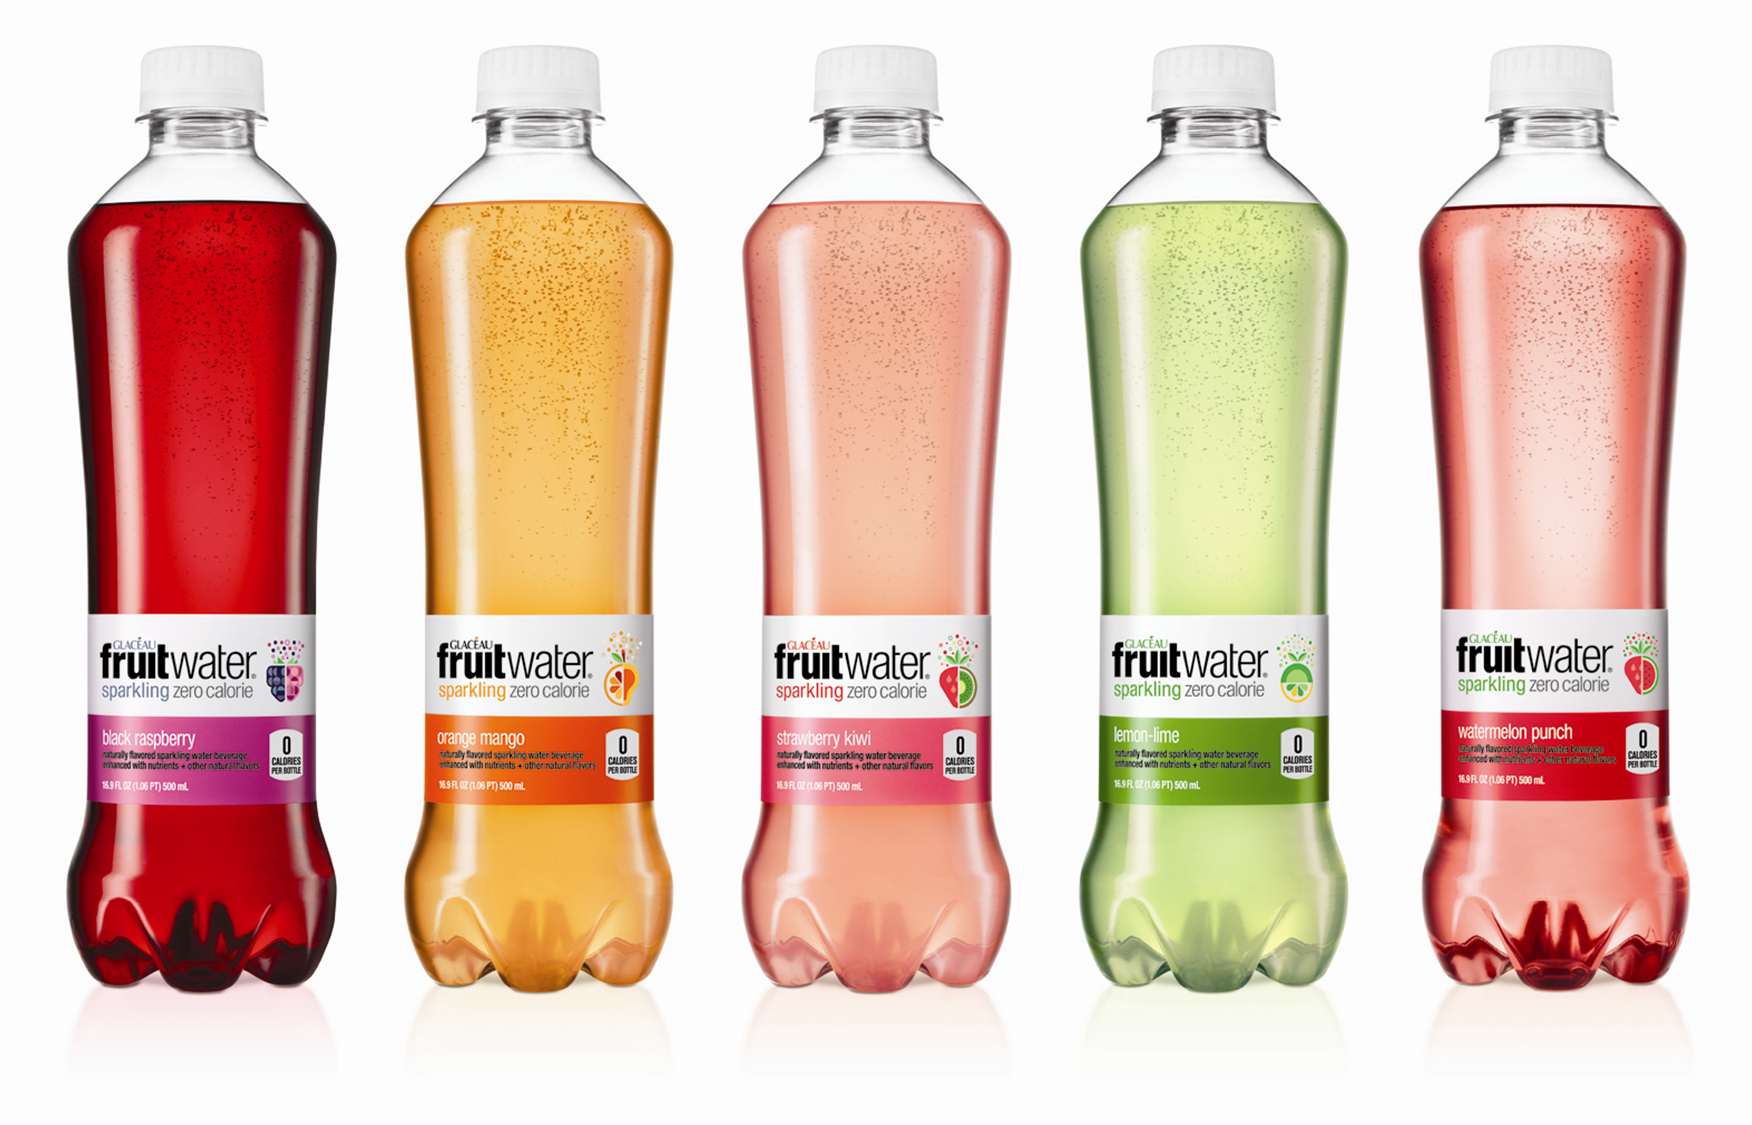 Glaceau Fruitwater Adds Artificial Color - Eat Drink Better